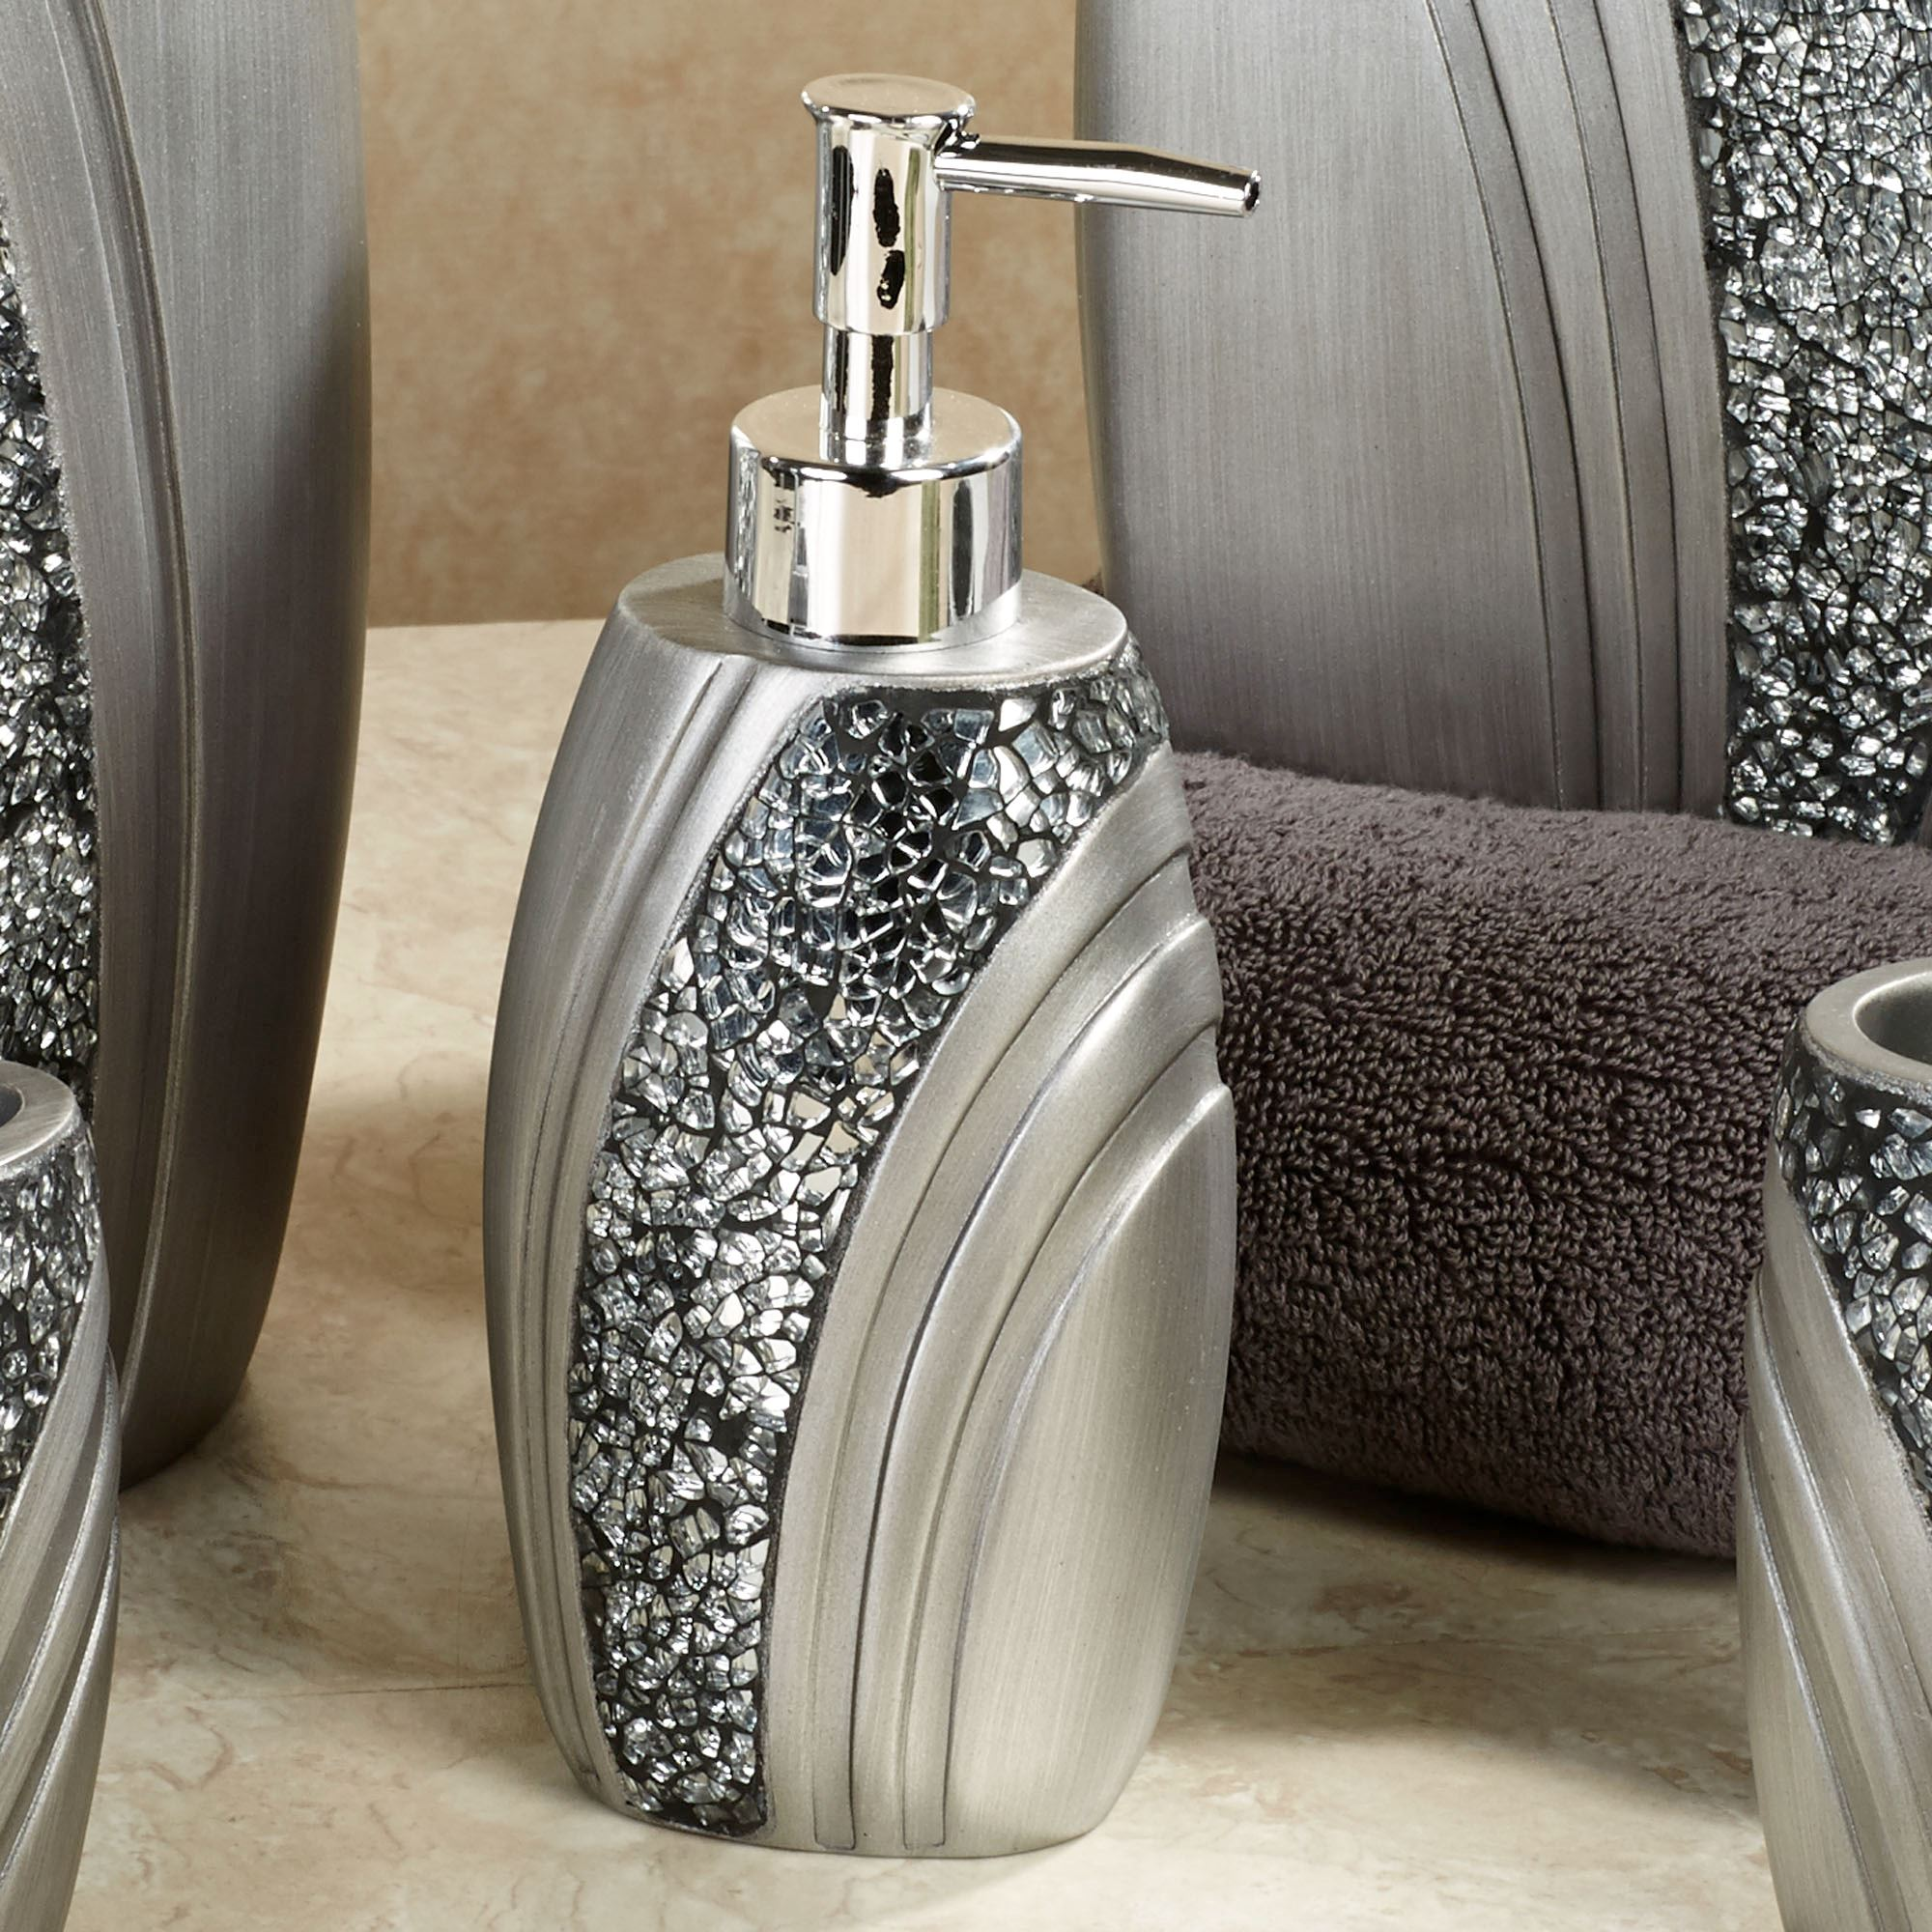 Brilliance Lotion Soap Dispenser Silver Gray